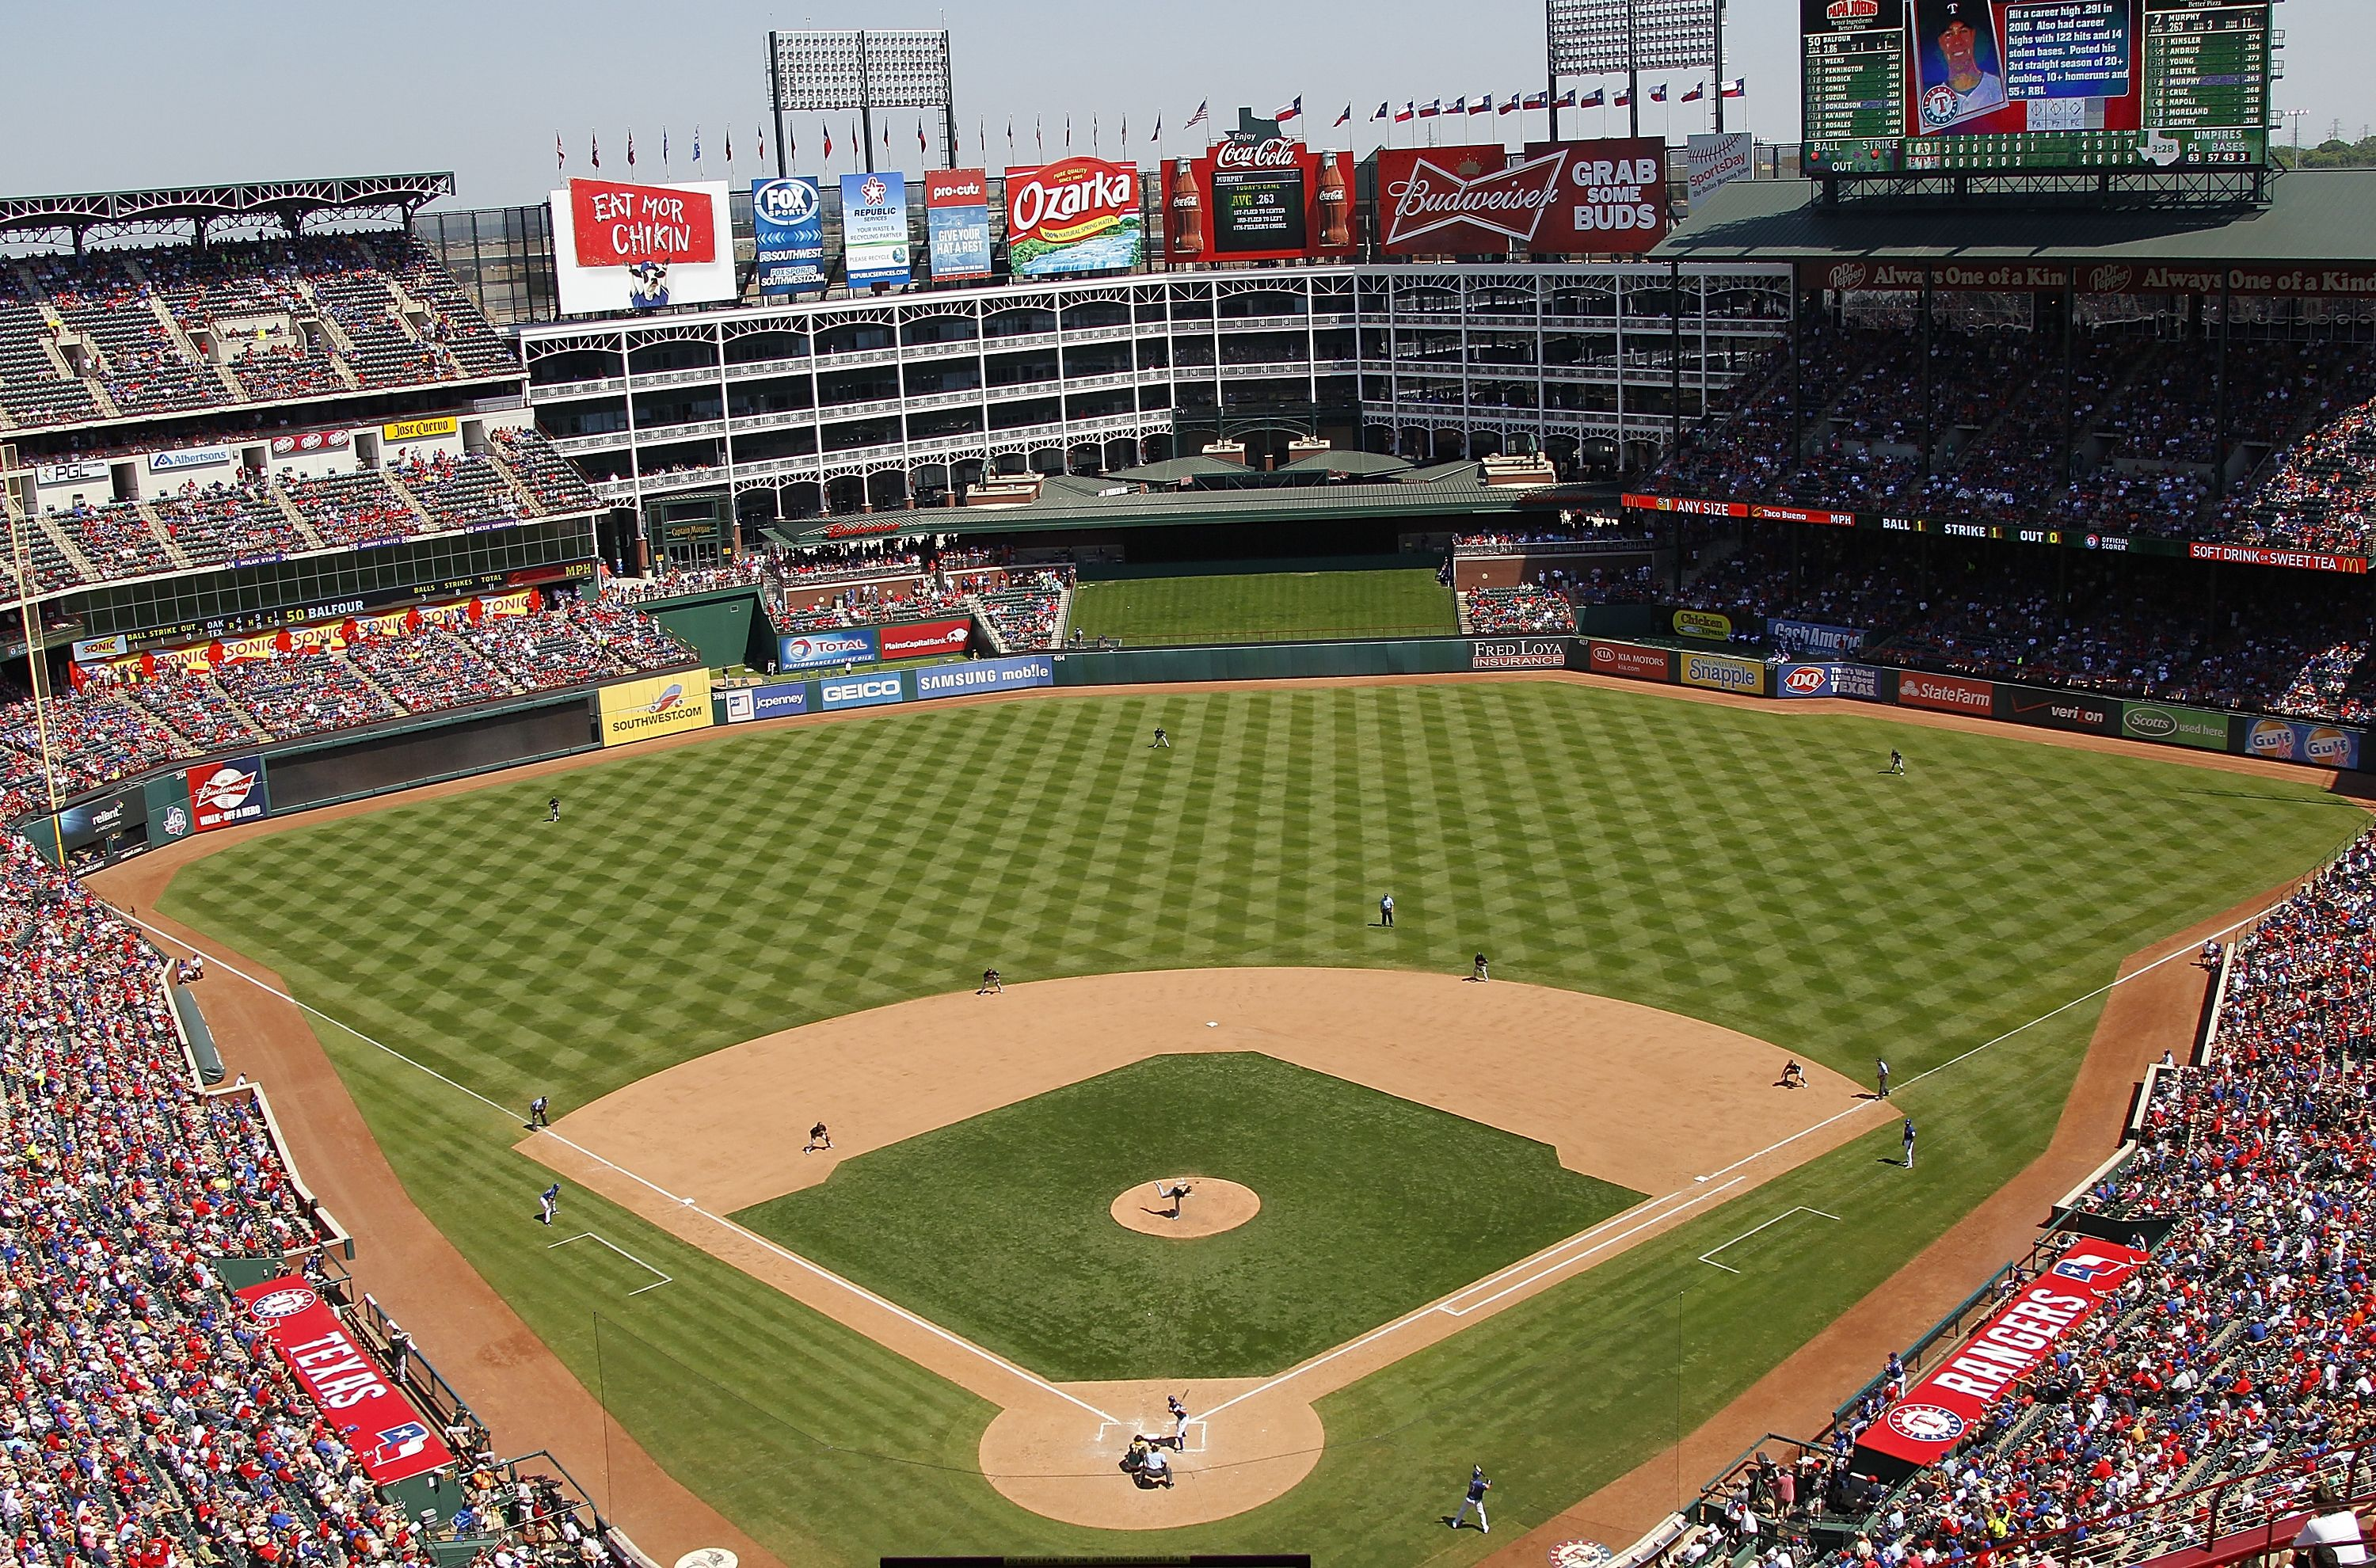 Globe Life Park In Arlington Home To The Texas Rangers My Home Away From Home And We Still Refer To It A Baseball Park Baseball Stadium Baseball Scoreboard